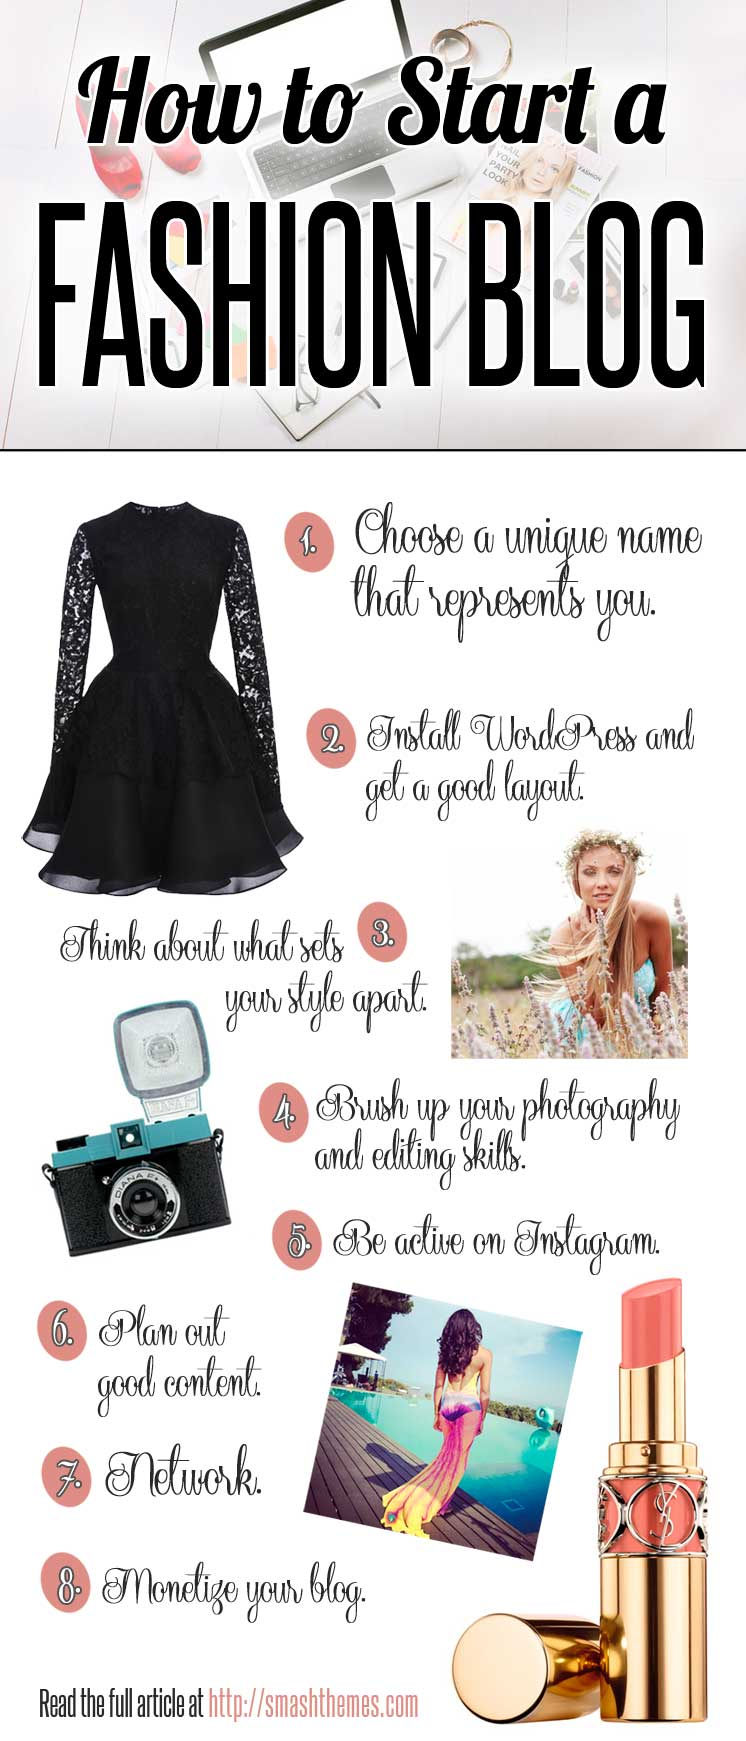 How to Start A Fashion Blog and Get Paid - Infographic